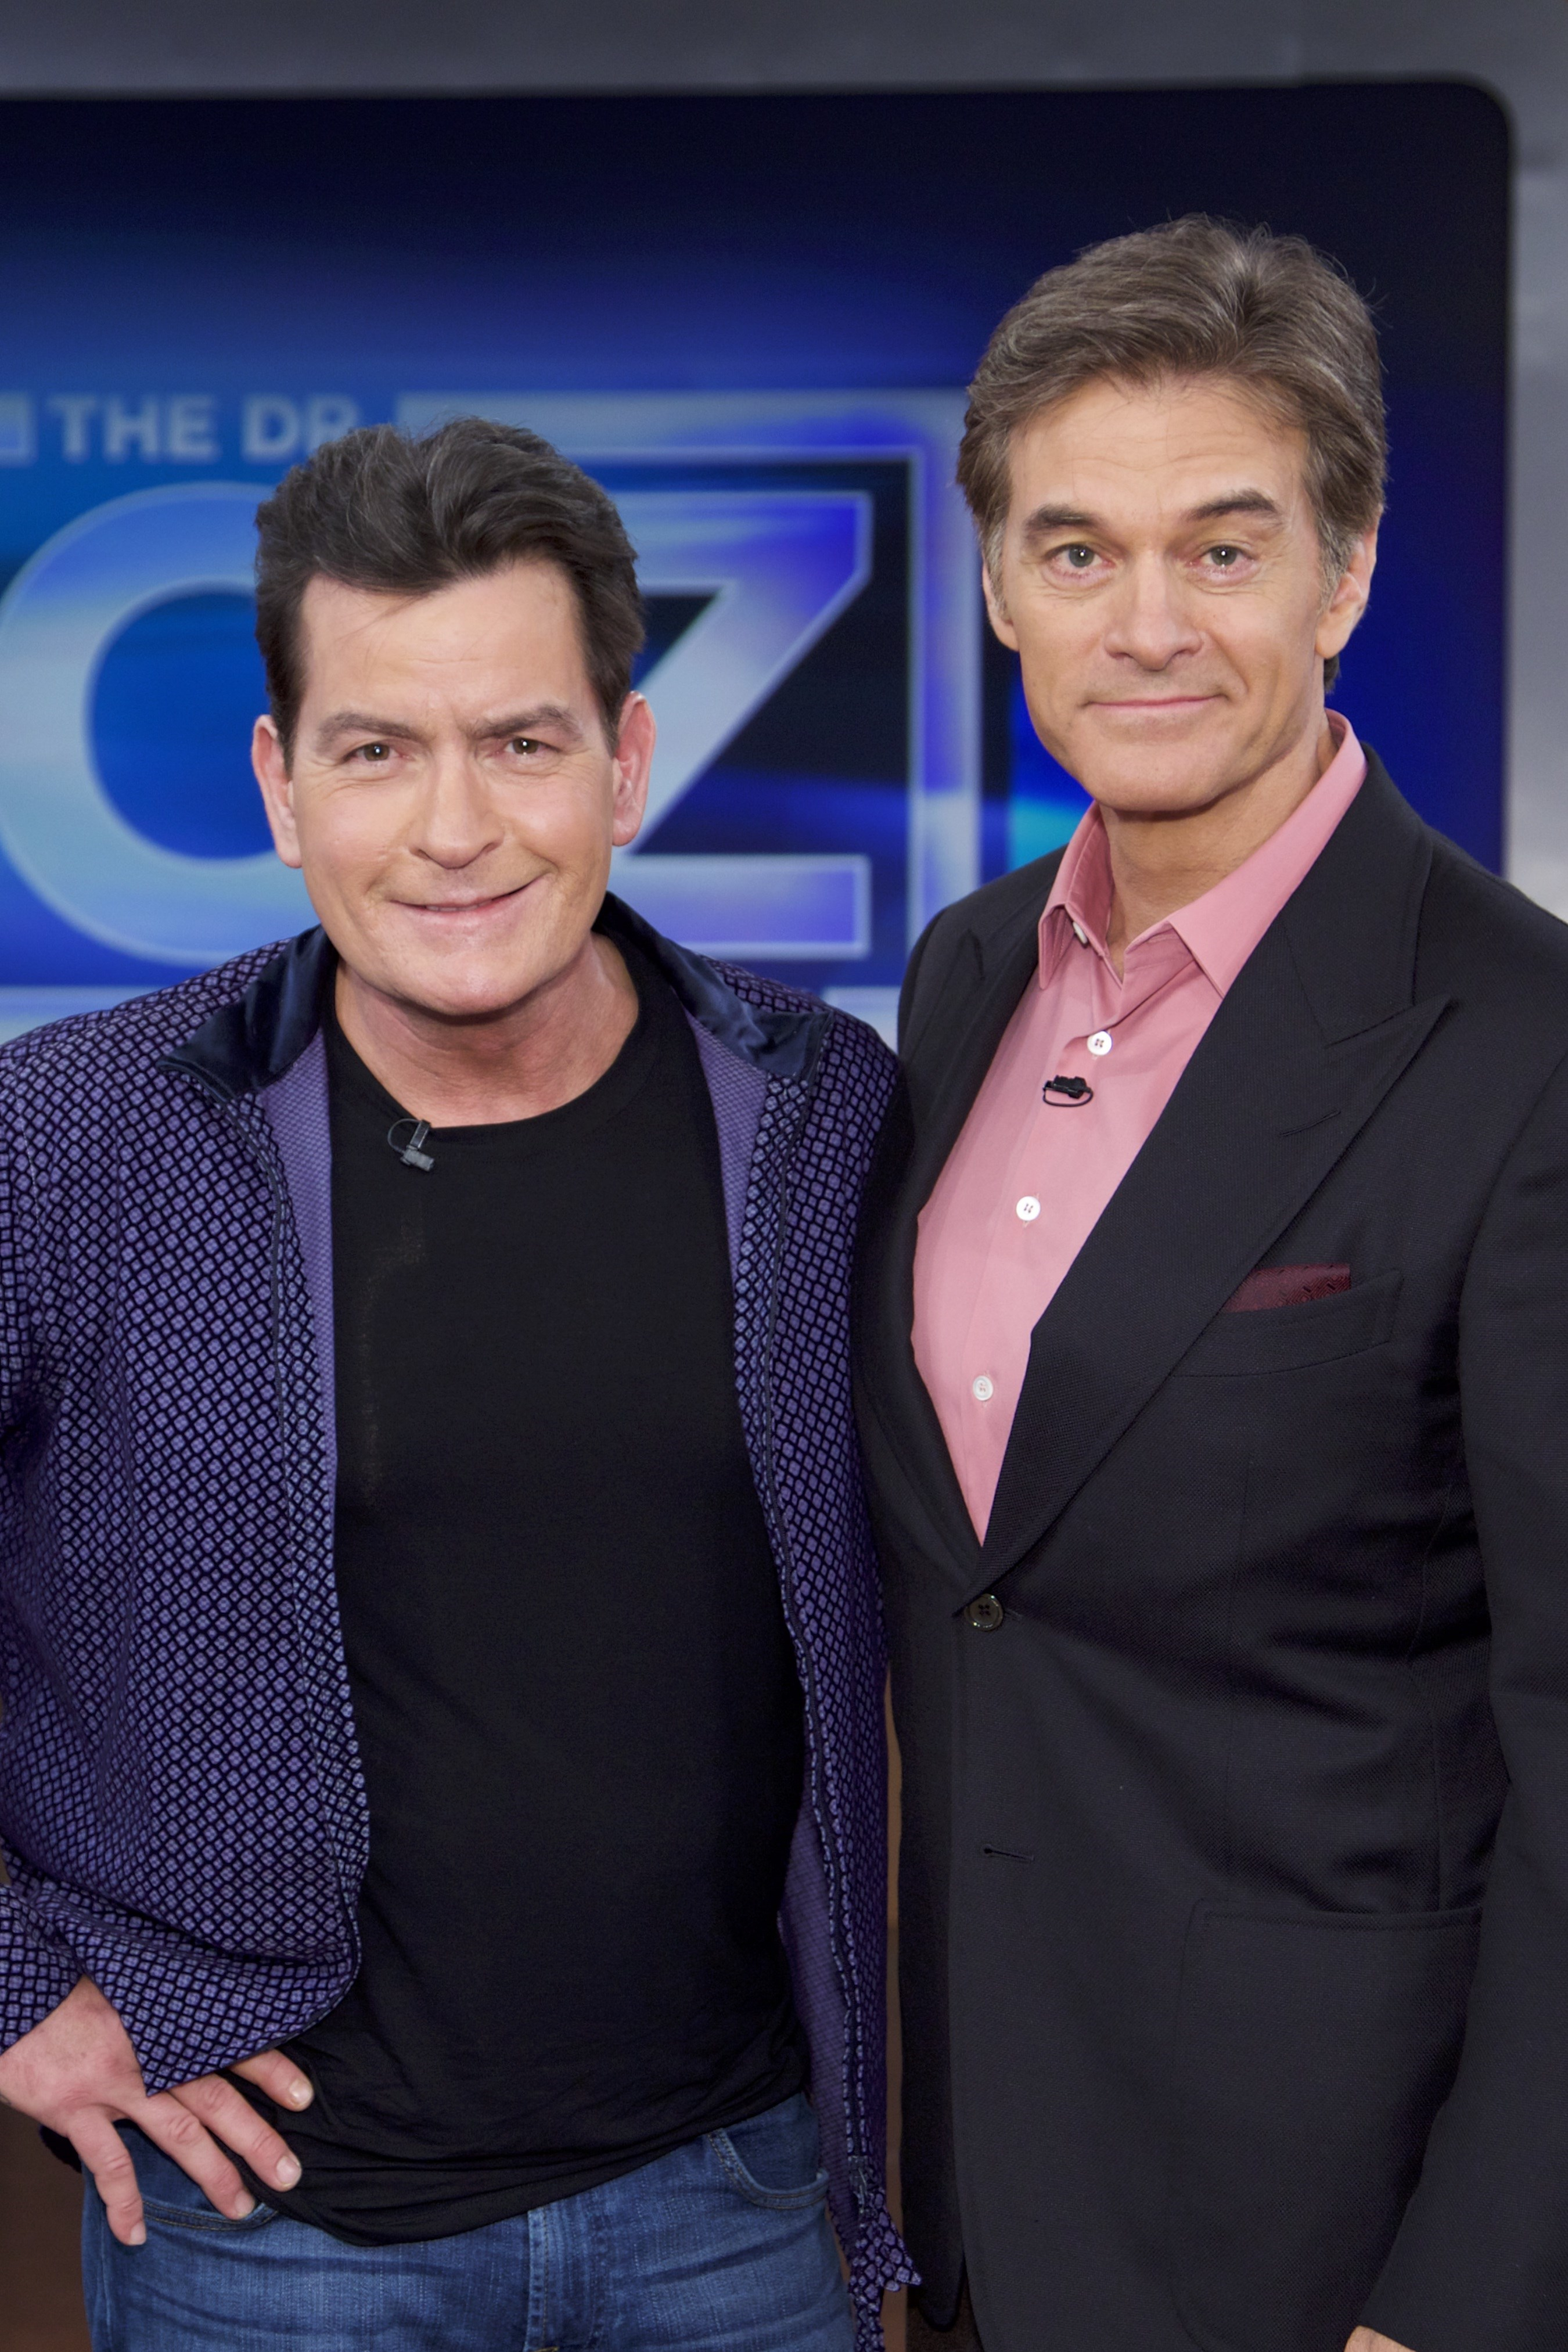 Dr. Oz and Charlie Sheen Photo 2